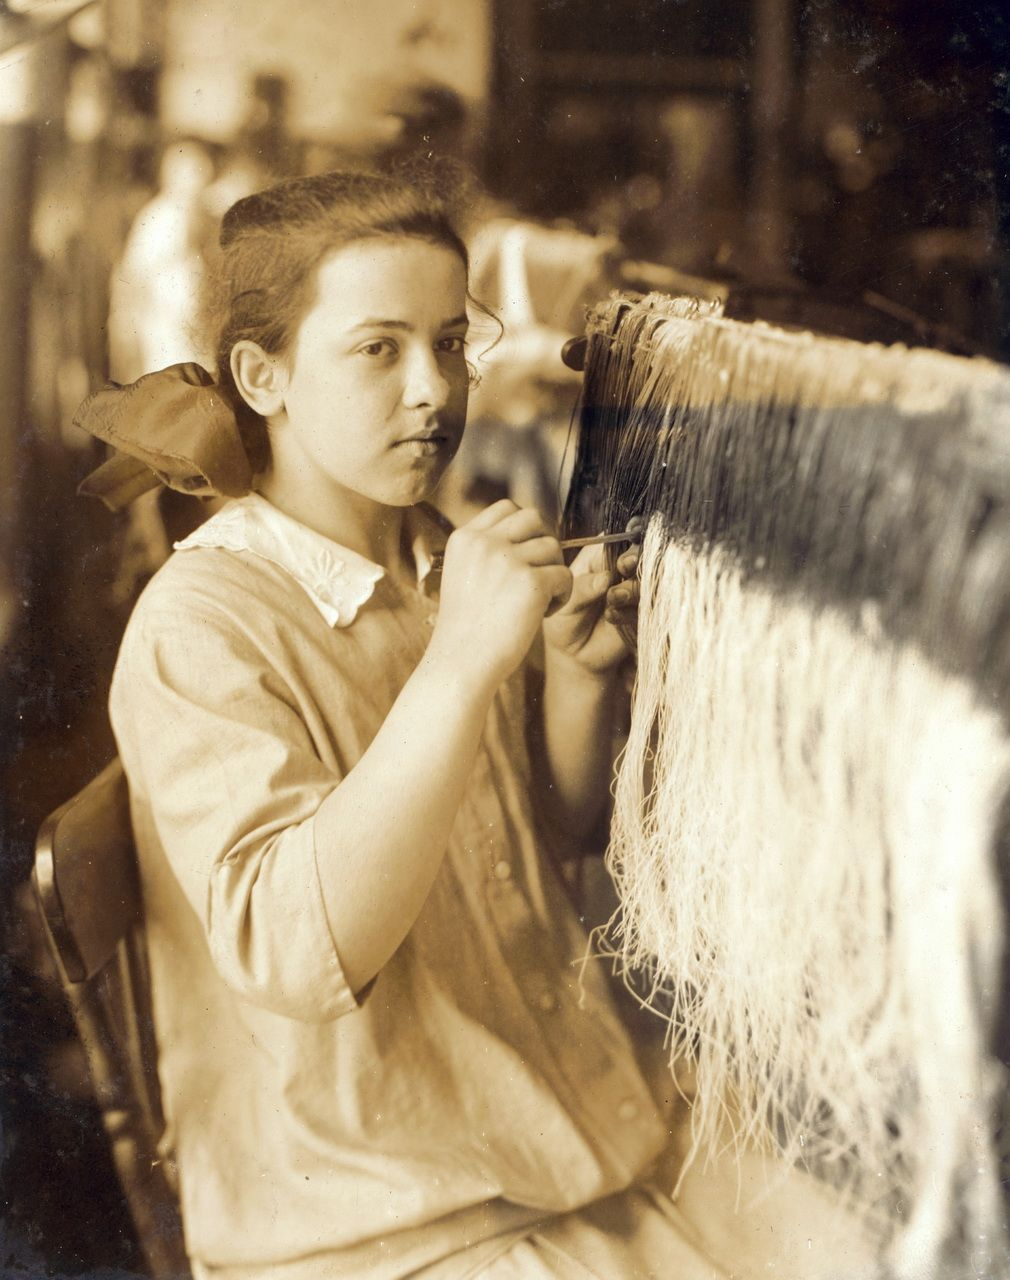 A mill girl working - around 1912